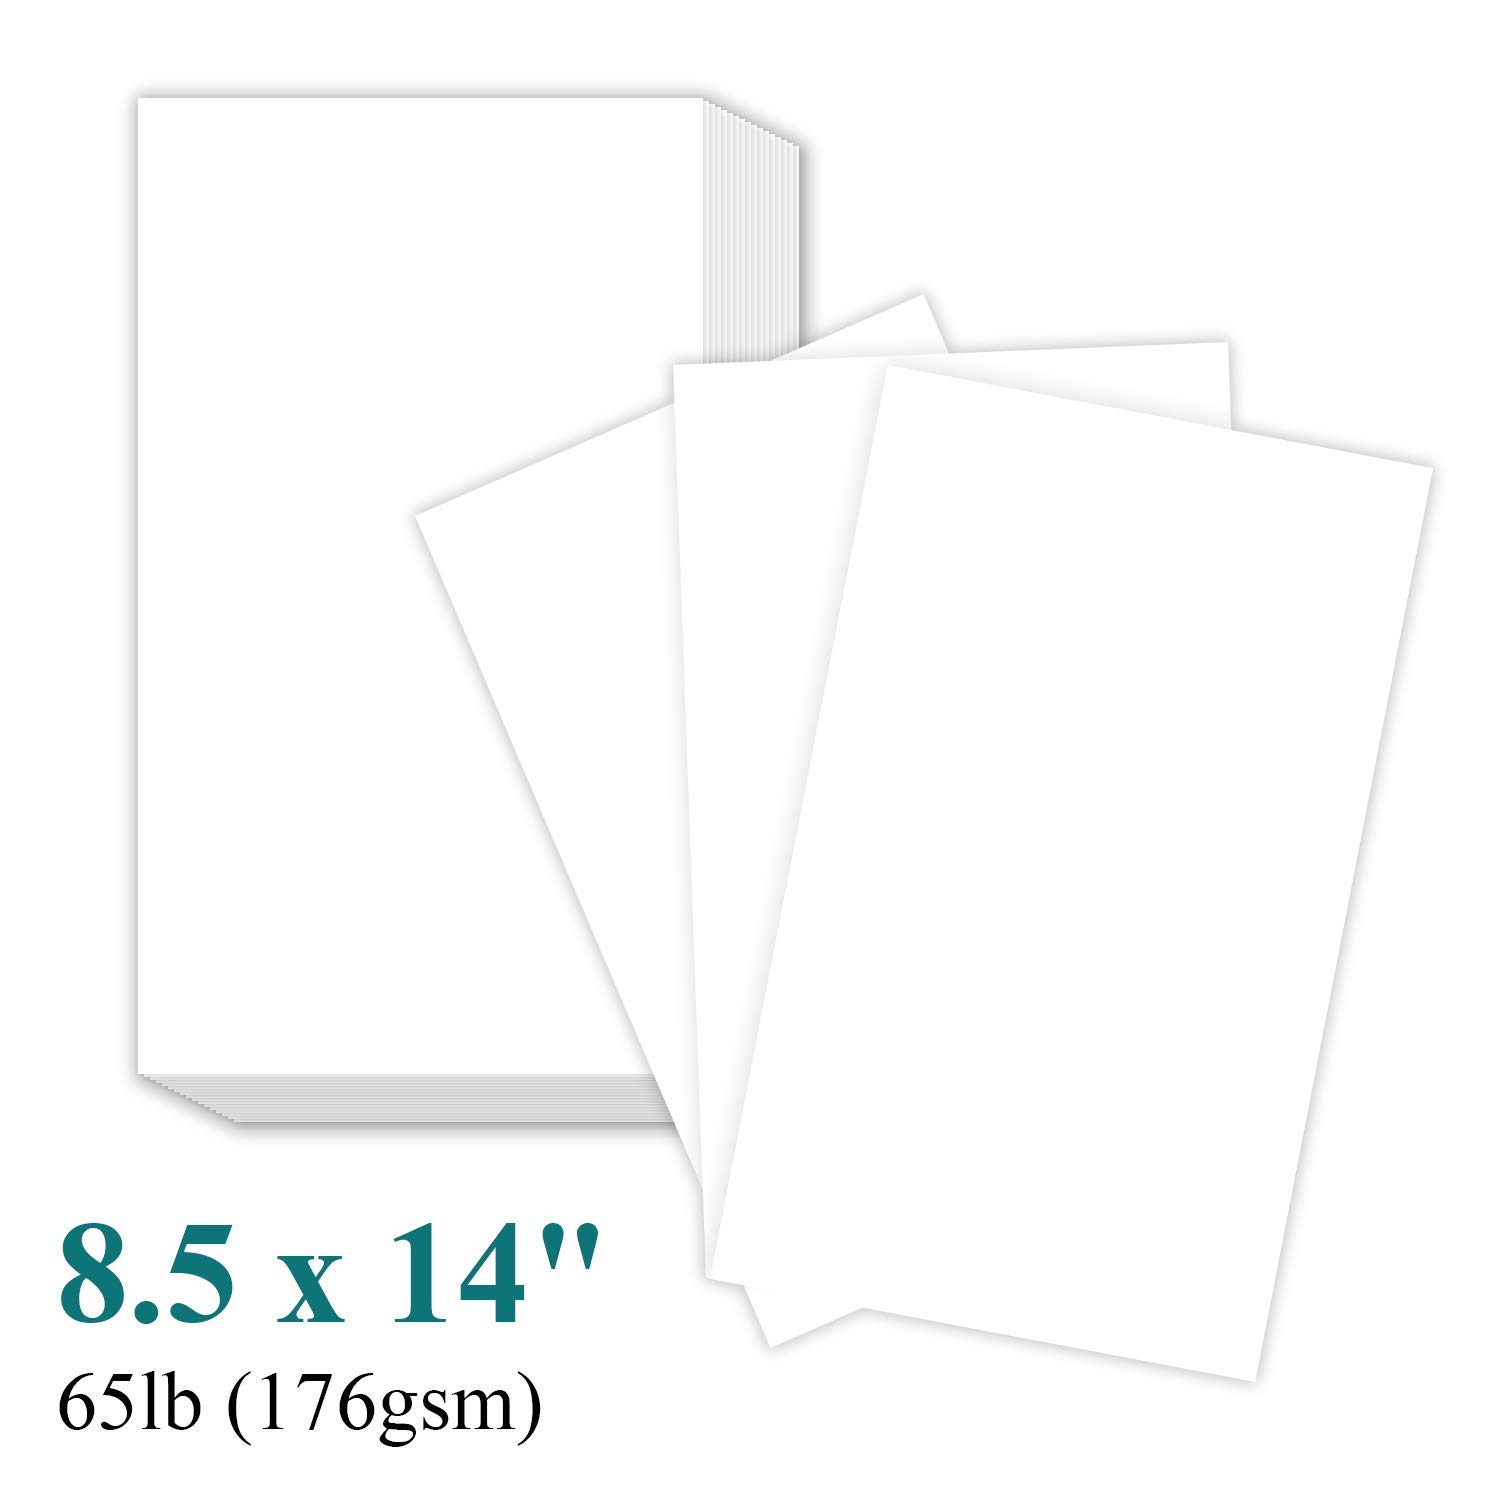 8 1/2 x 14'' Legal Size Card Stock Paper - Premium Smooth 65lb Cover Cardstock - Perfect for Documents, Programs, Menus Printing | 100 Sheets Per Pack by S Superfine Printing